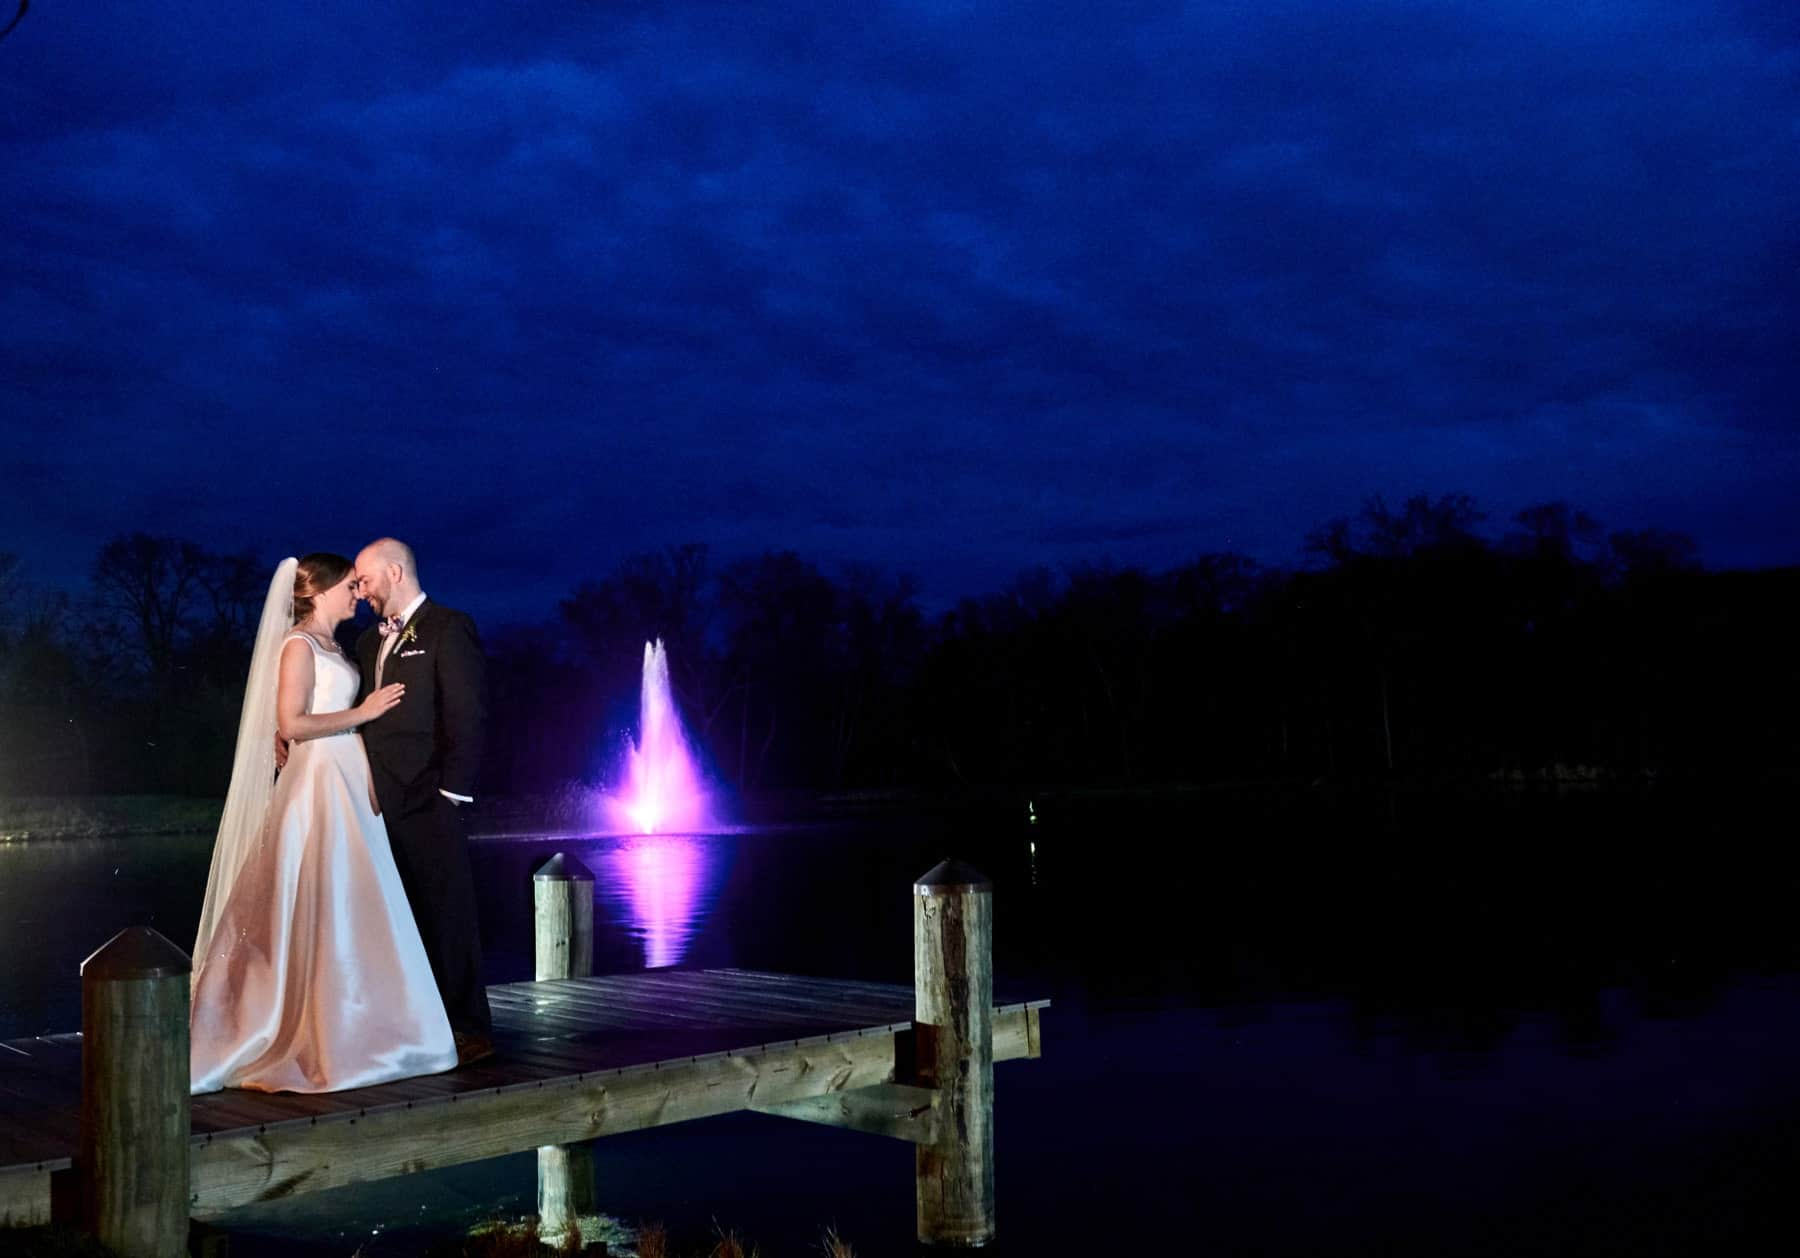 night wedding portrait at The Mill lakeside Manor